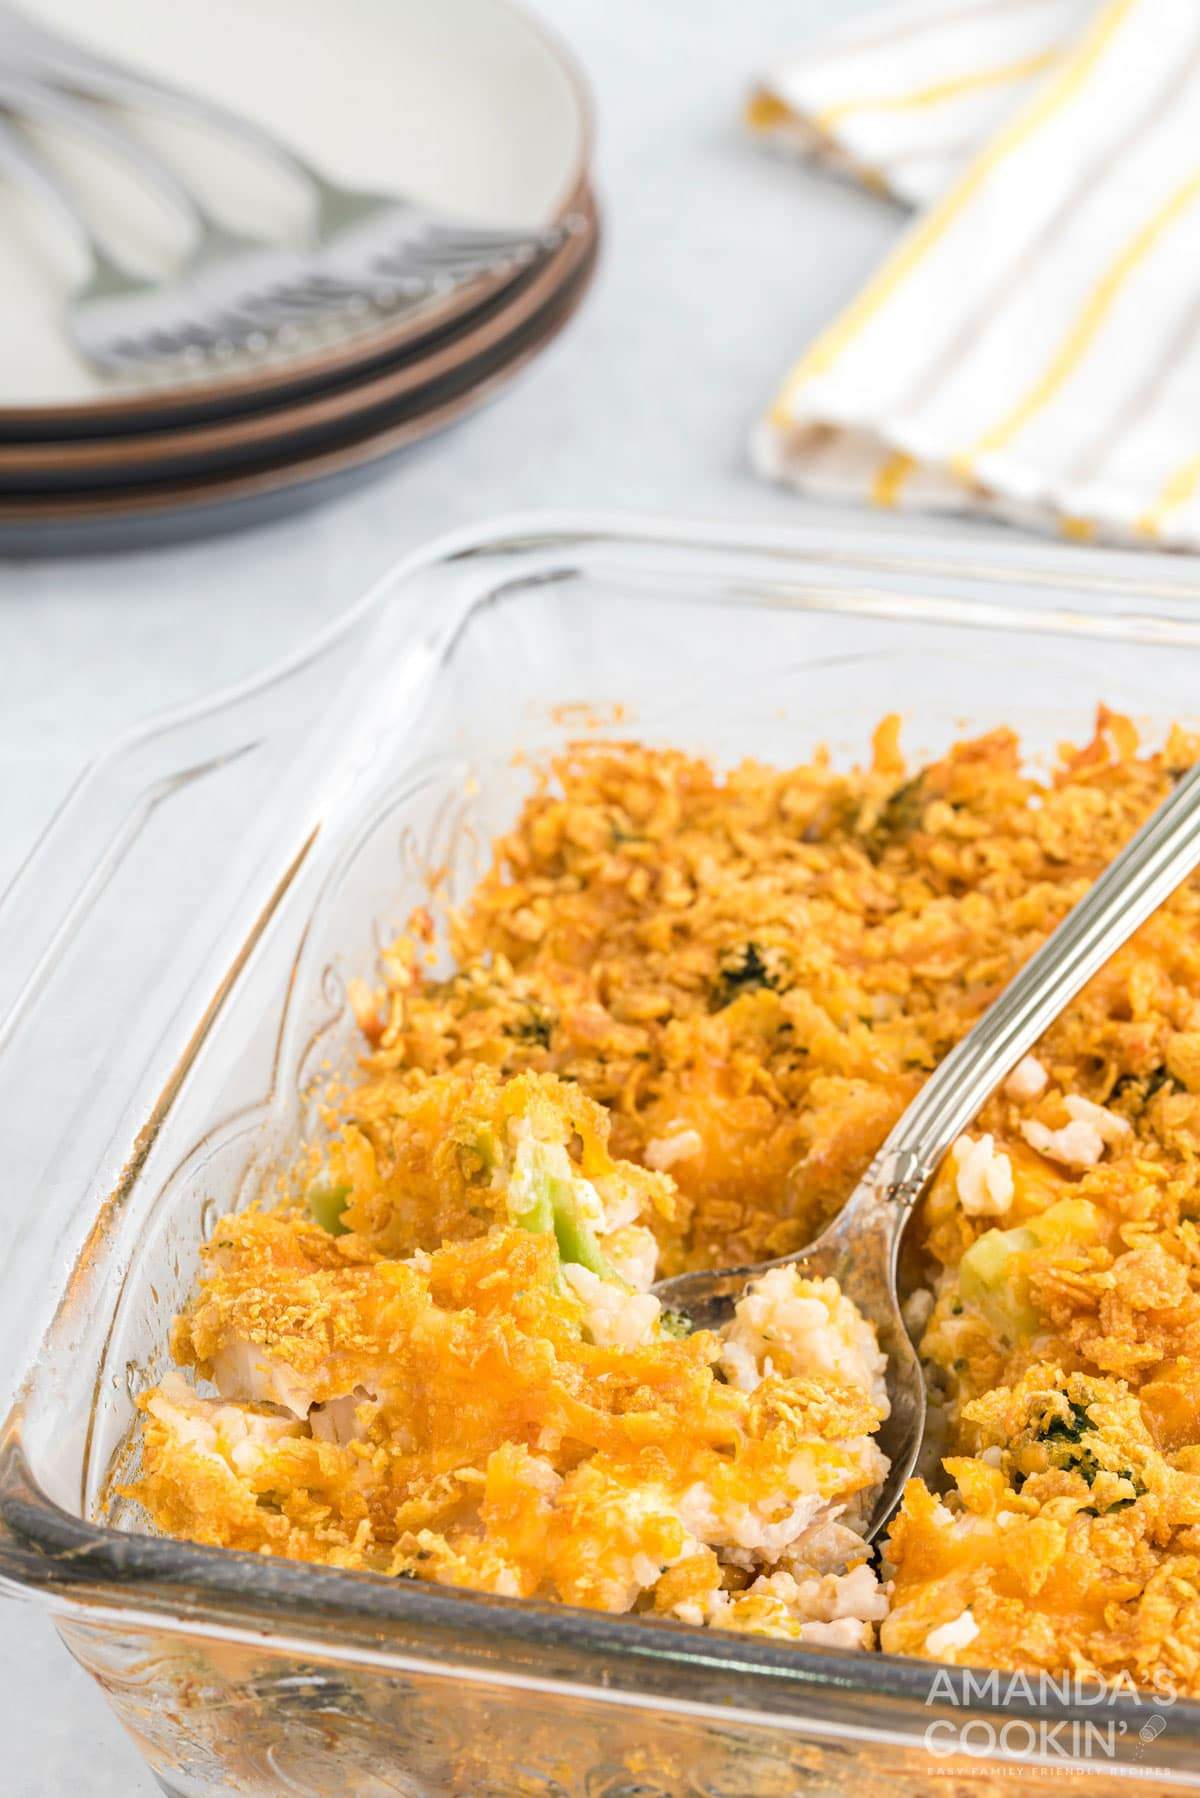 glass dish of Make Chicken Broccoli Rice Casserole with a spoon